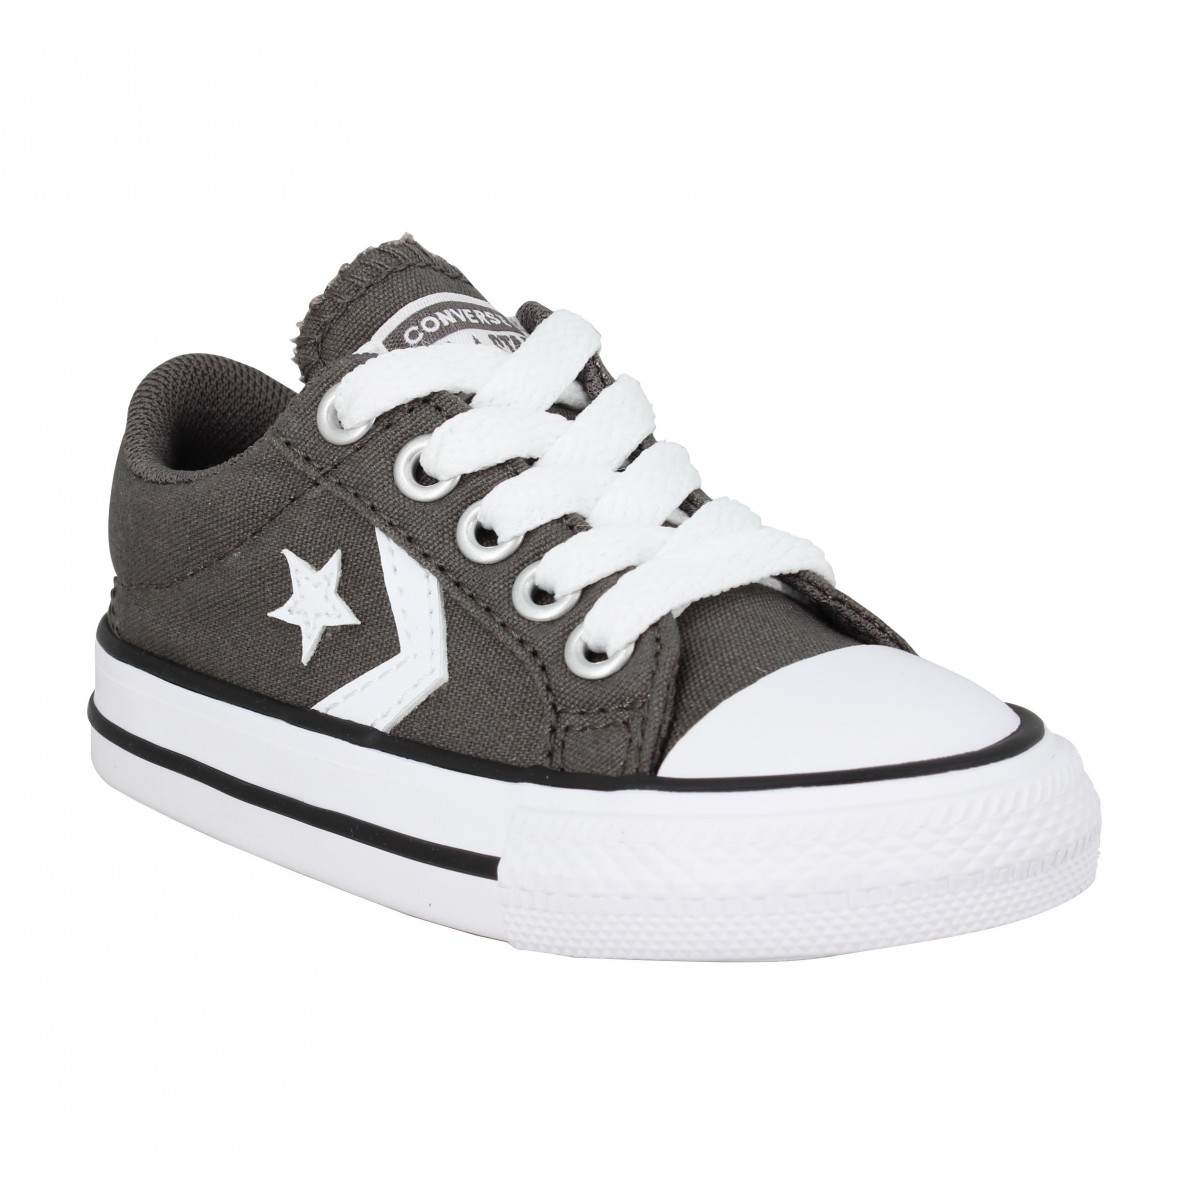 Baskets CONVERSE Star Player toile Enfant Rock